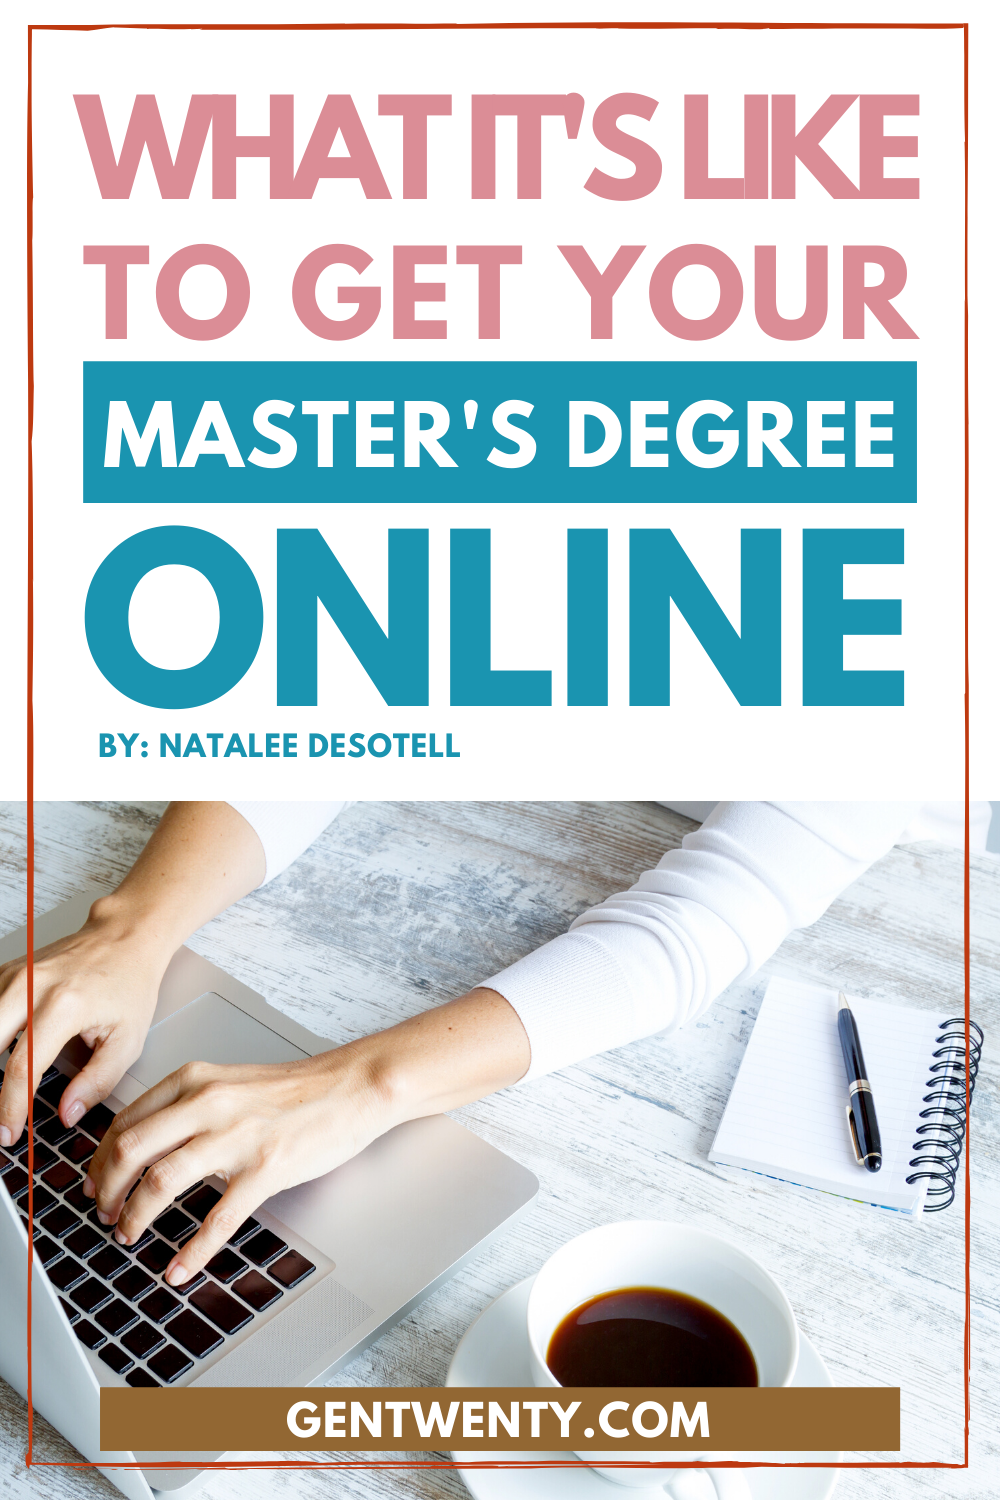 Masters In Computer Science Worth It : masters, computer, science, worth, Master's, Degree, Online, Masters, Degree,, School,, Teaching, Biology